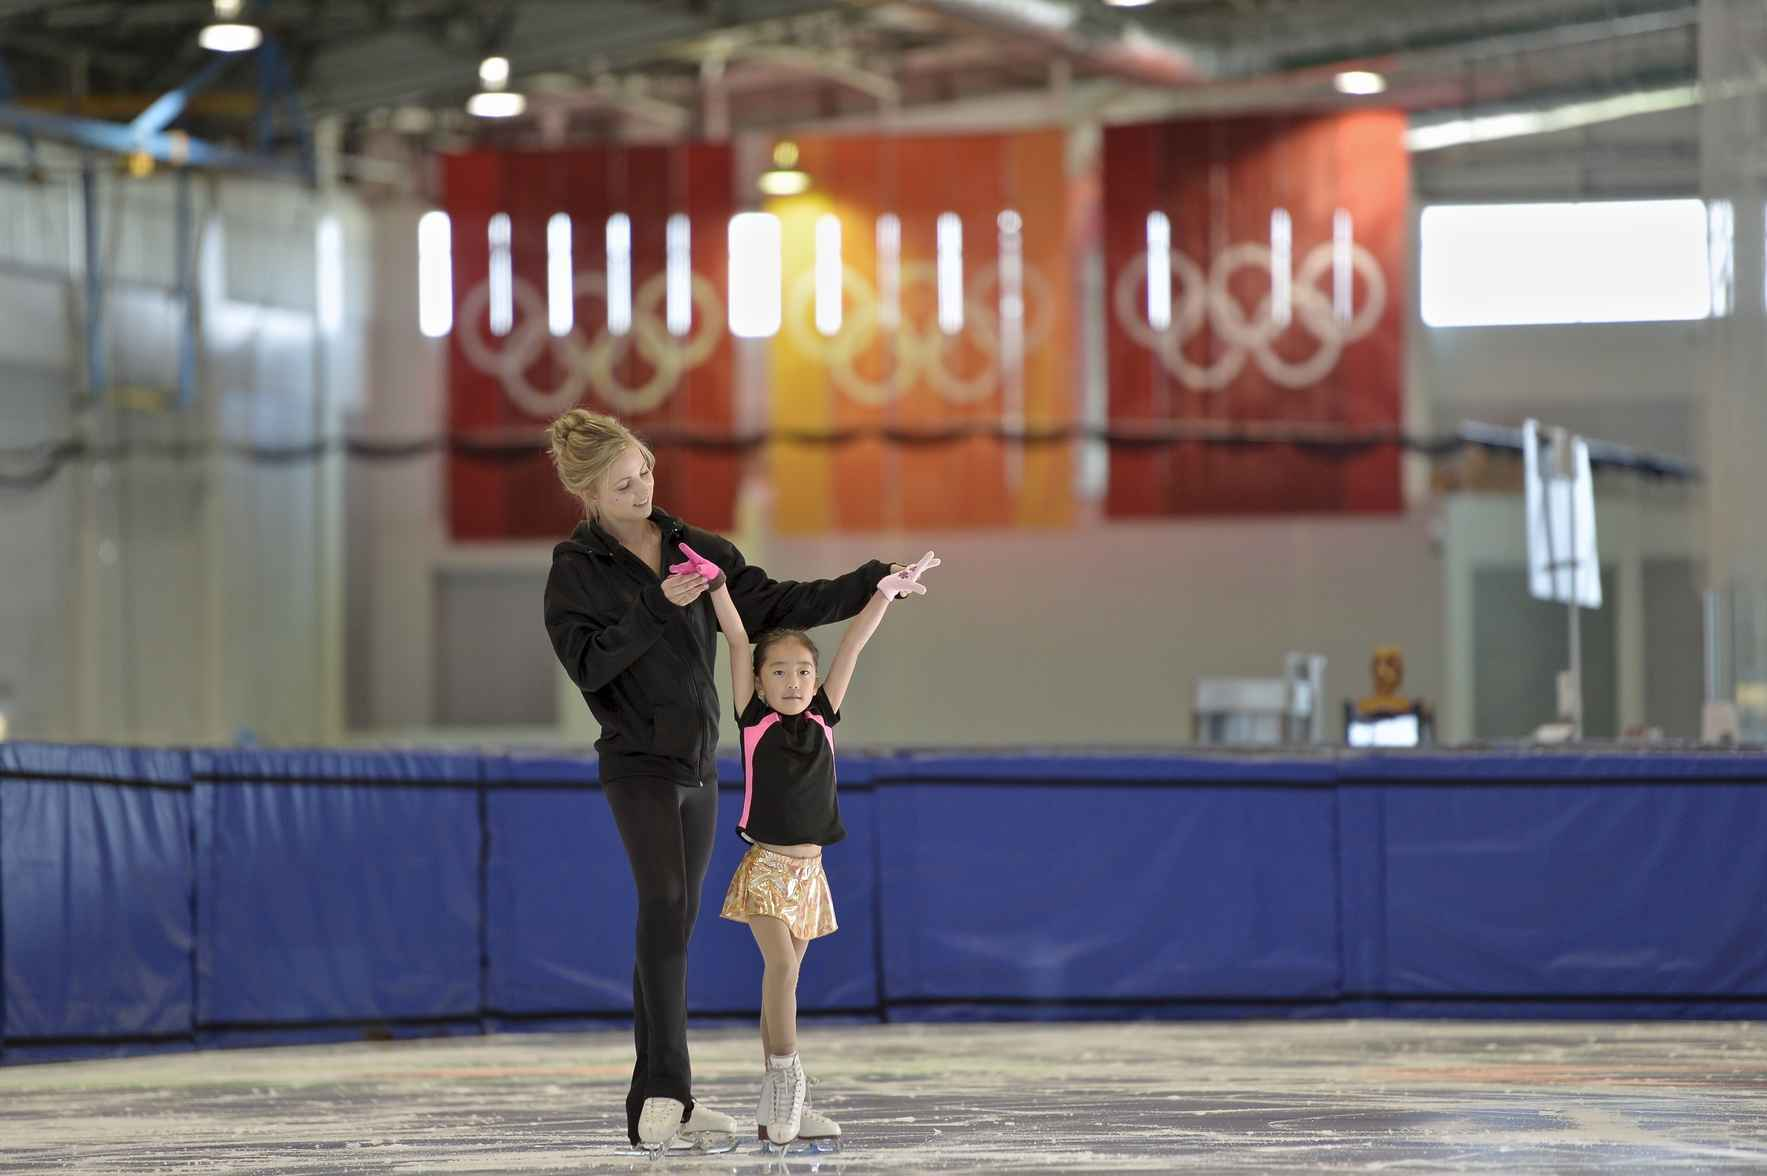 Support our Youth Programs, Healthy Communities and world-class Olympic Venues! Make a difference and leave your legacy today. image